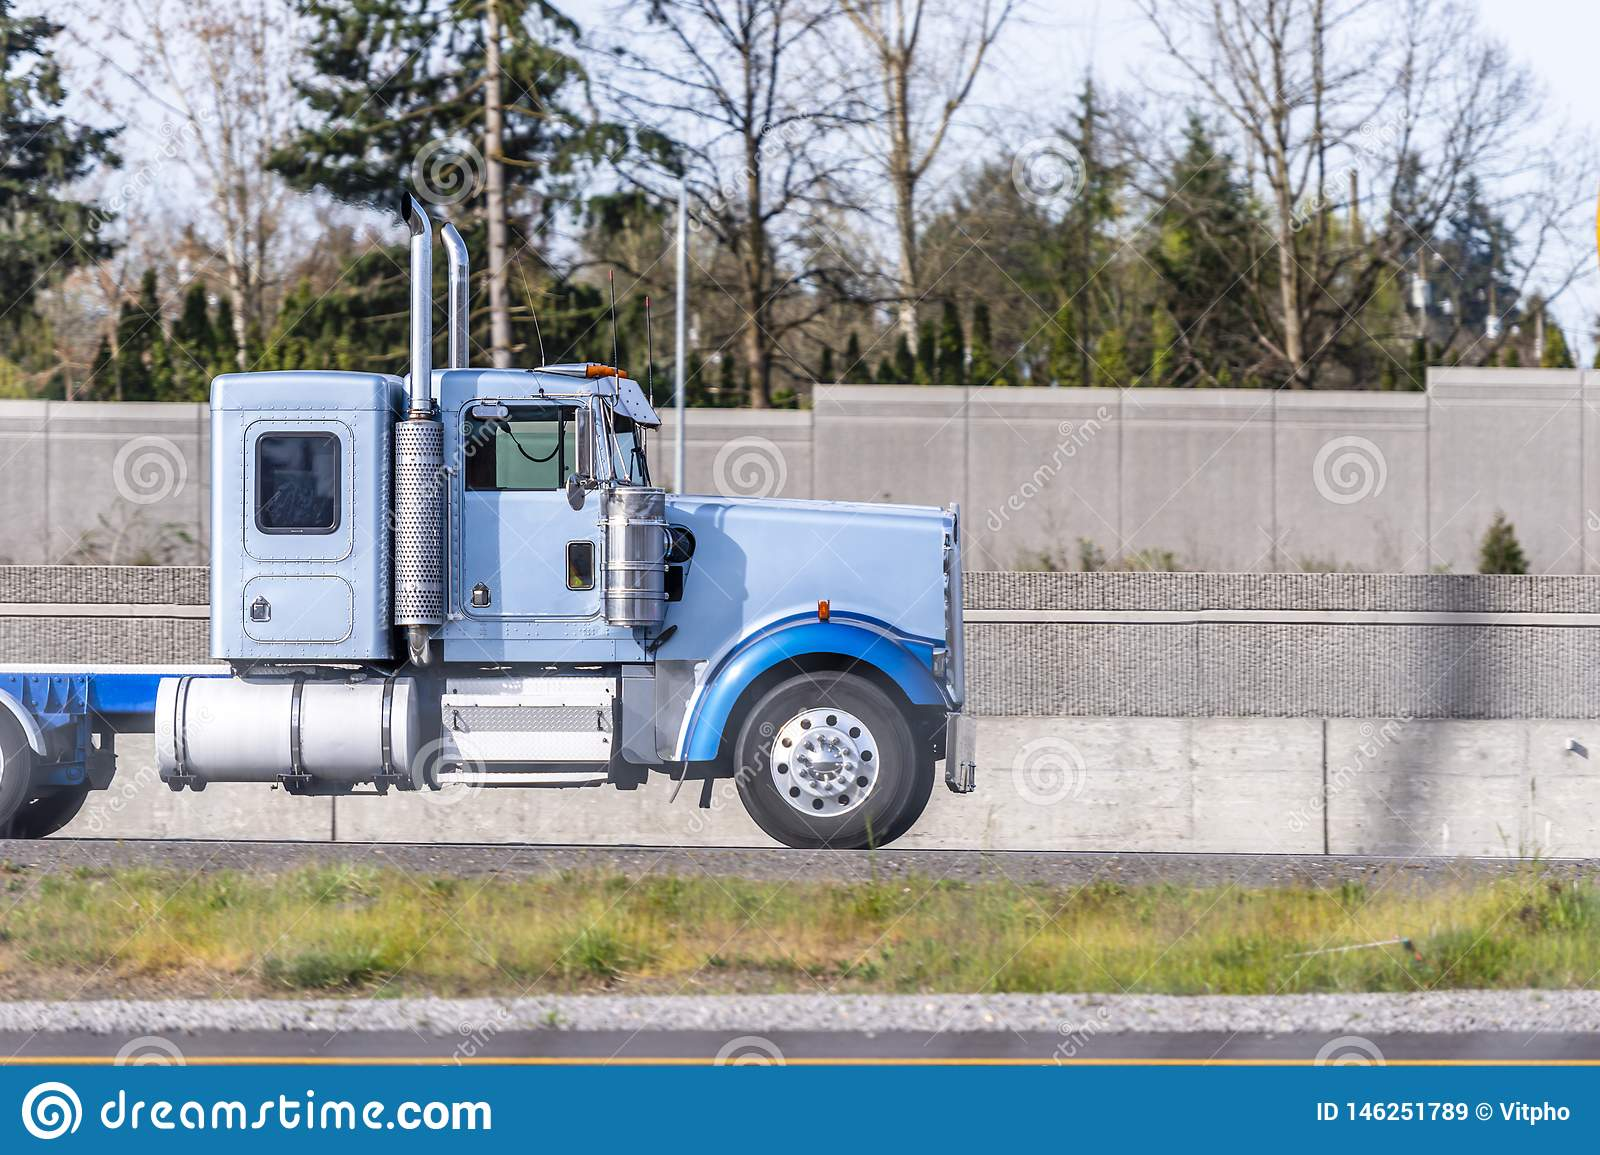 Profile Of Big Rig Blue Semi Truck Tractor Running On The Road For